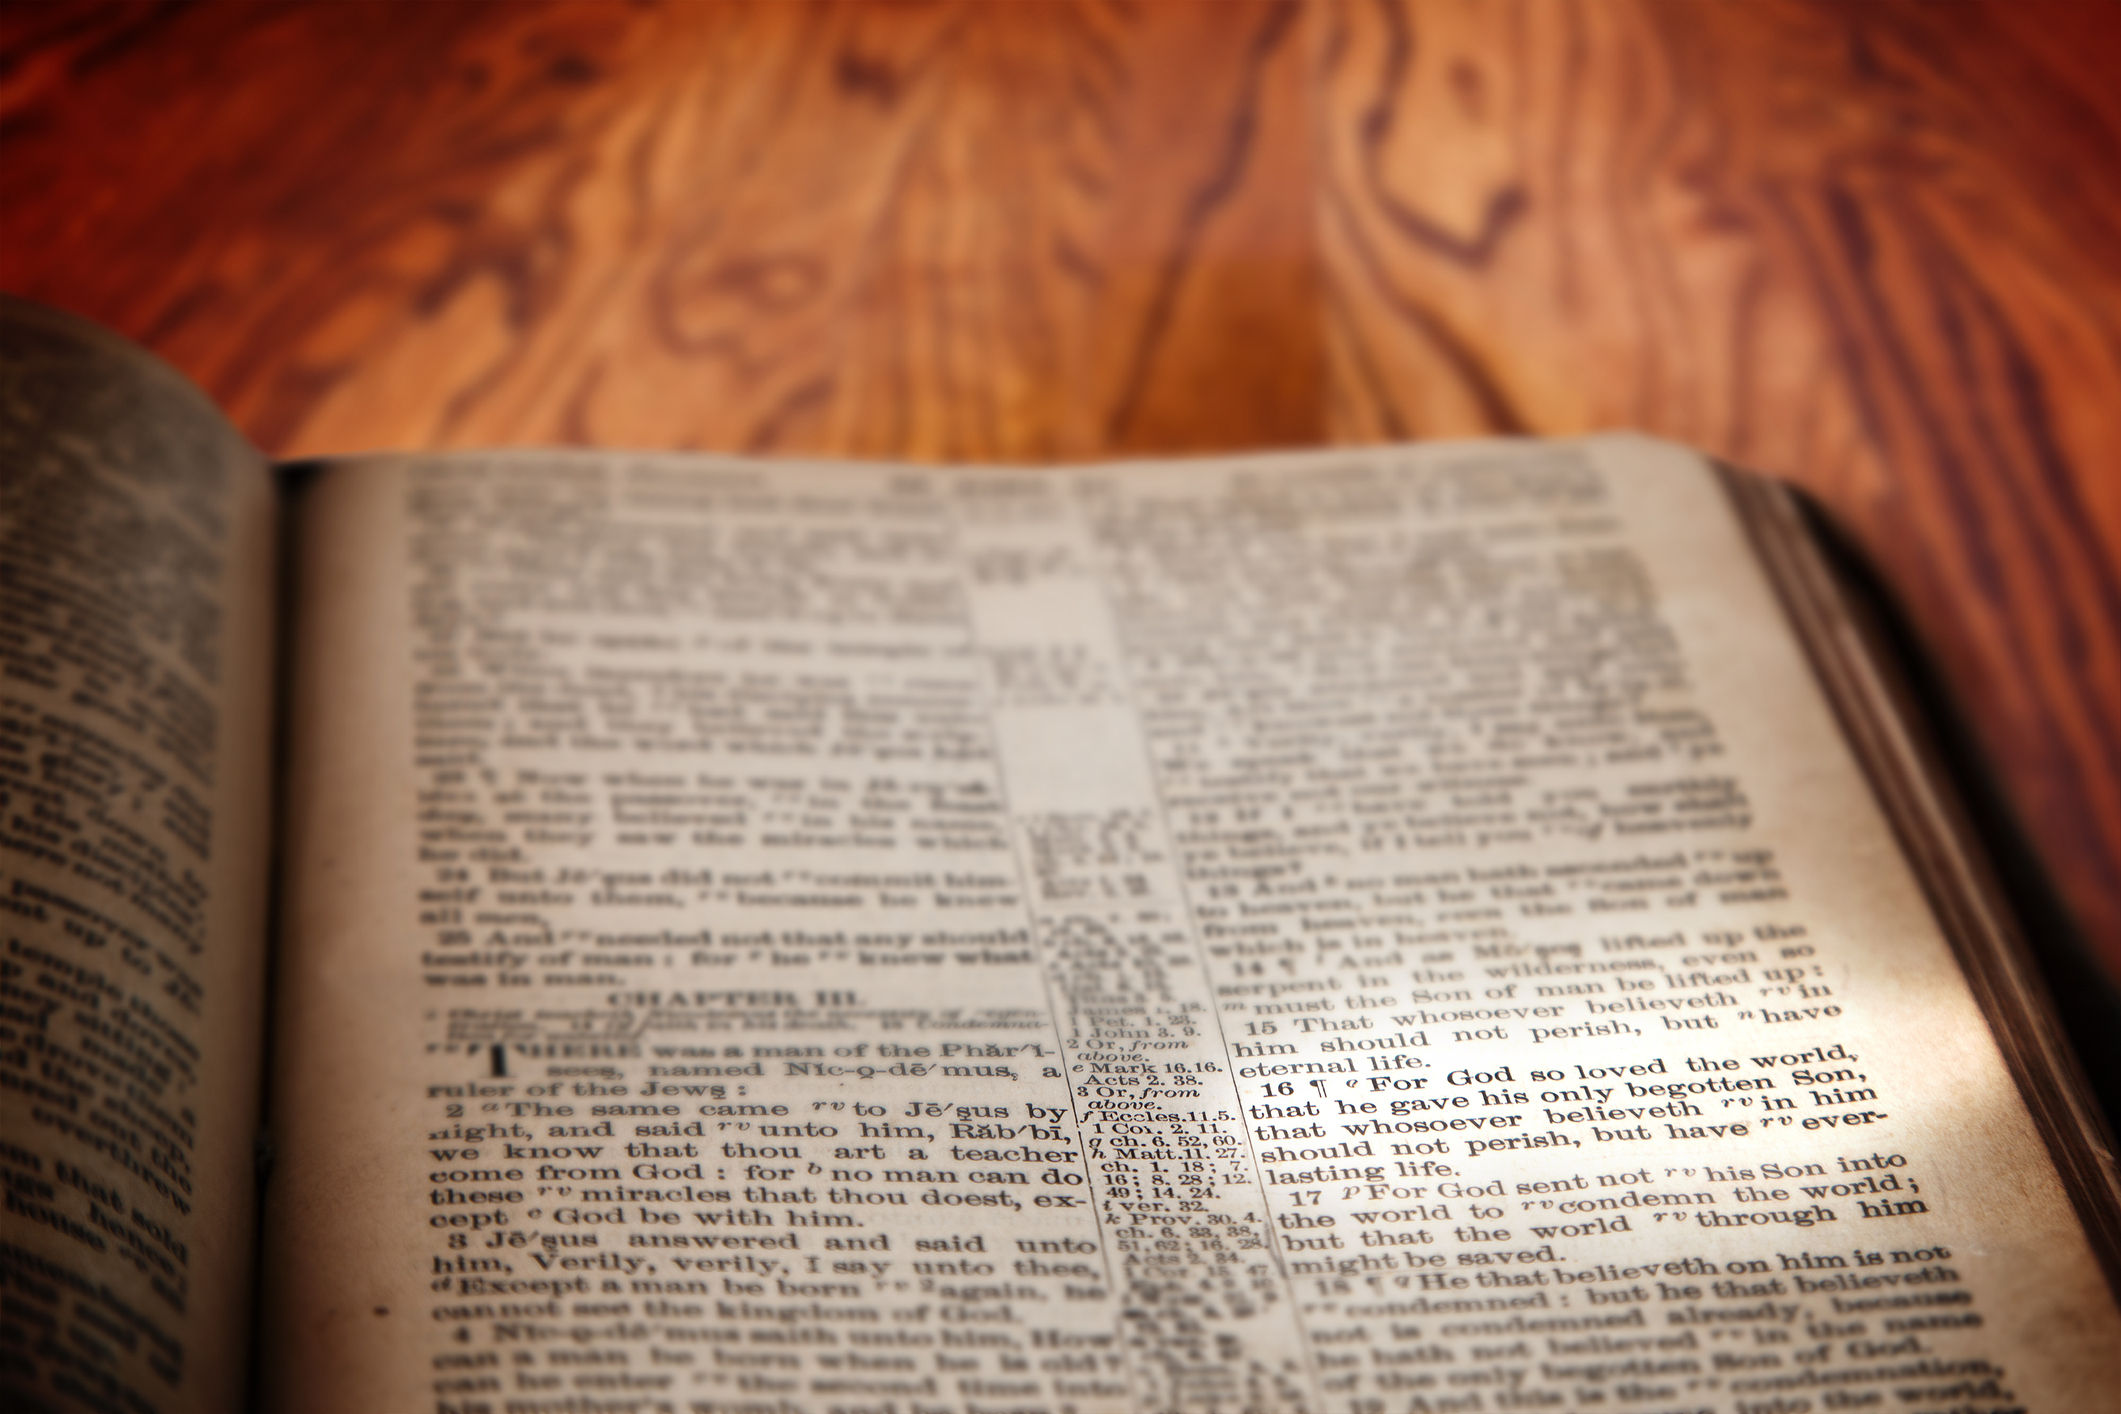 Closeup of an old Holy Bible opened to the famous verse of John 3:16 and highlighted by a beam of light. Book rests on a rustic wooden table with deliberate focus on the verse with shallow depth of field on background. This translation is King James, which is public domain.